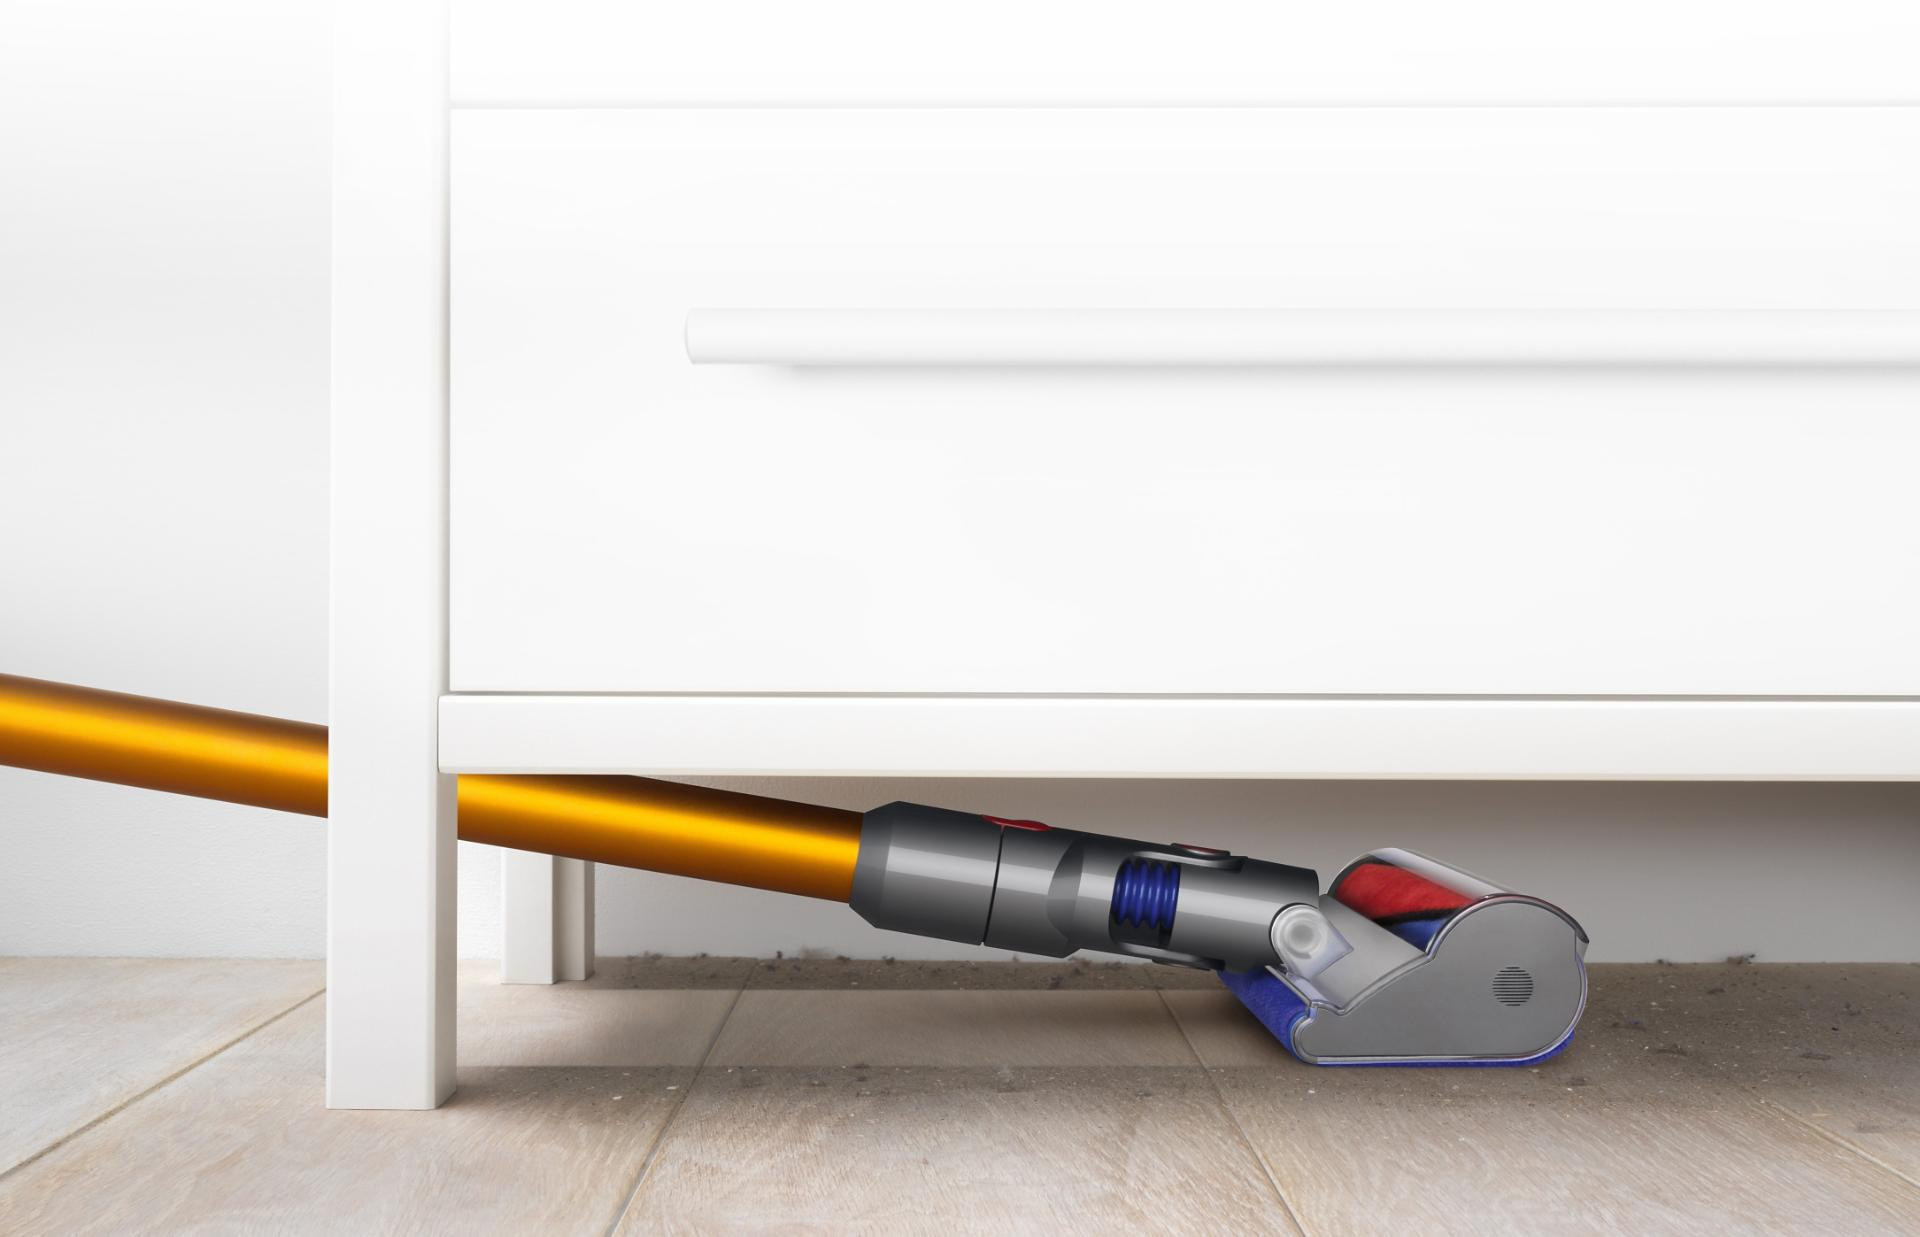 Dyson V8 vacuum cleaning hard floor under low positioned piece of furniture